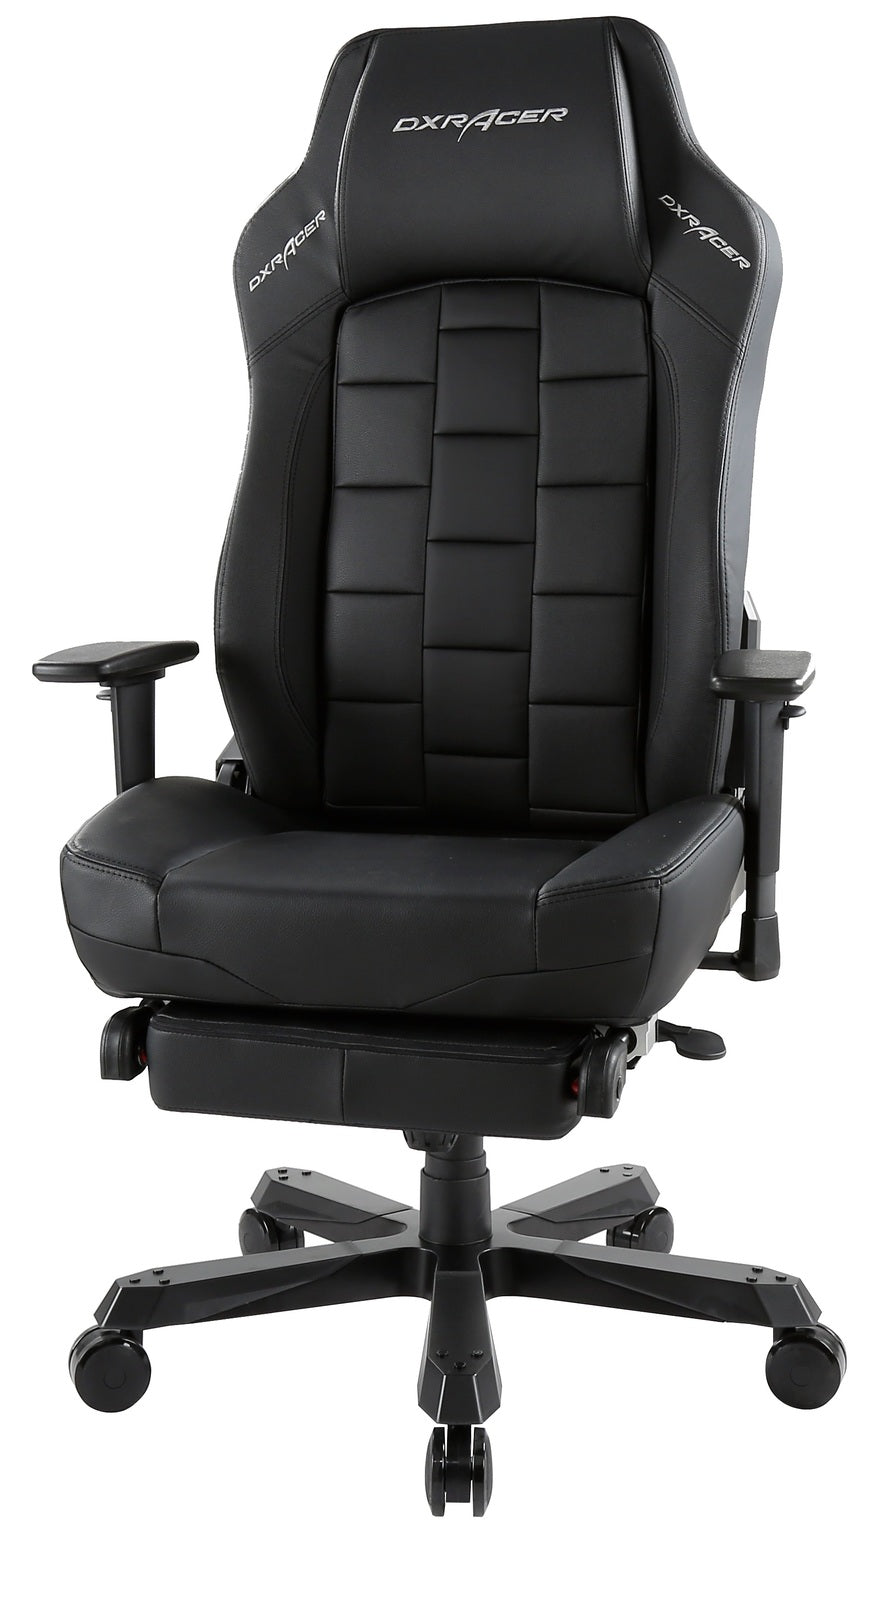 DXRacer Classic Series CT120 Gaming Chair - Black